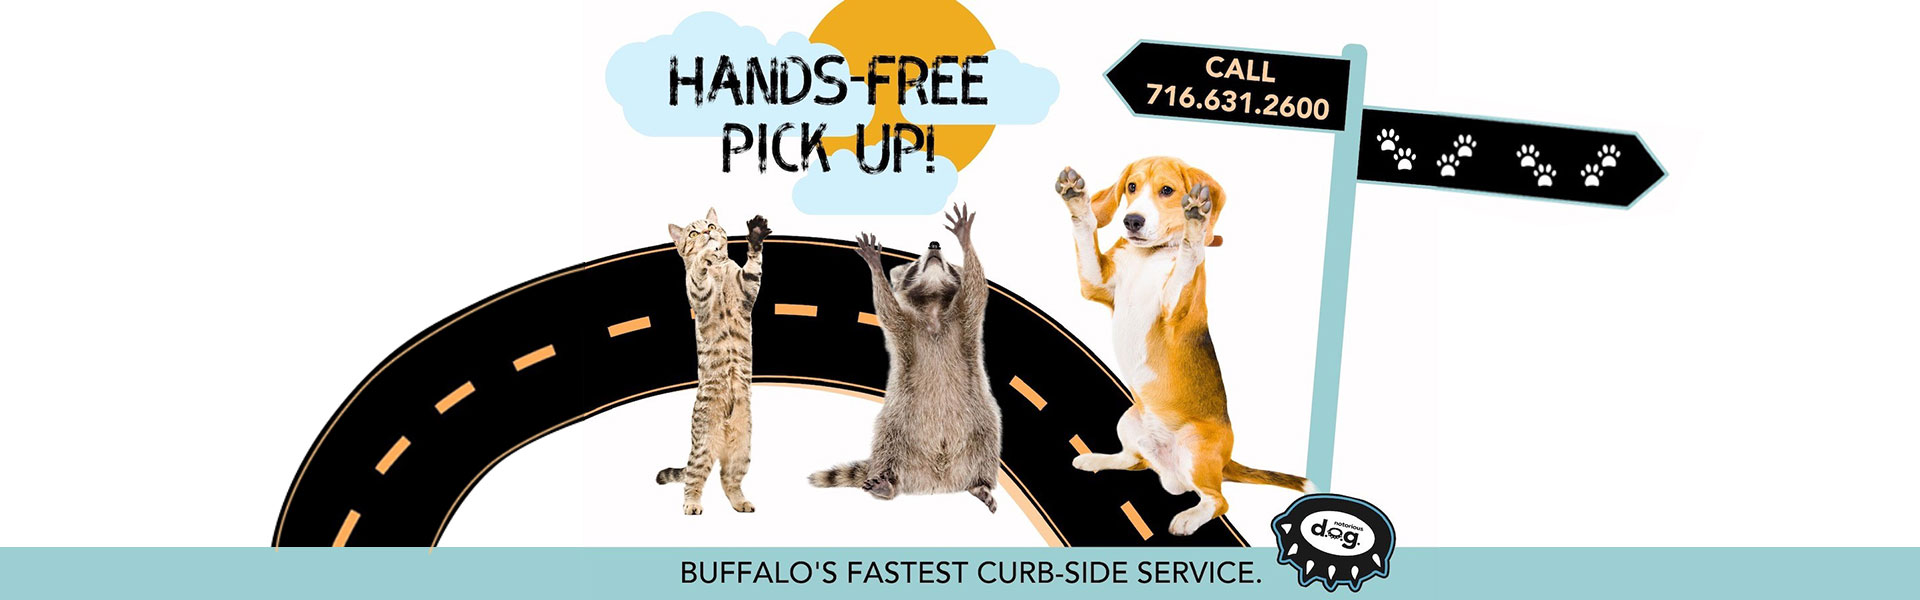 Hands-free curb side pickup at Notorious DOG